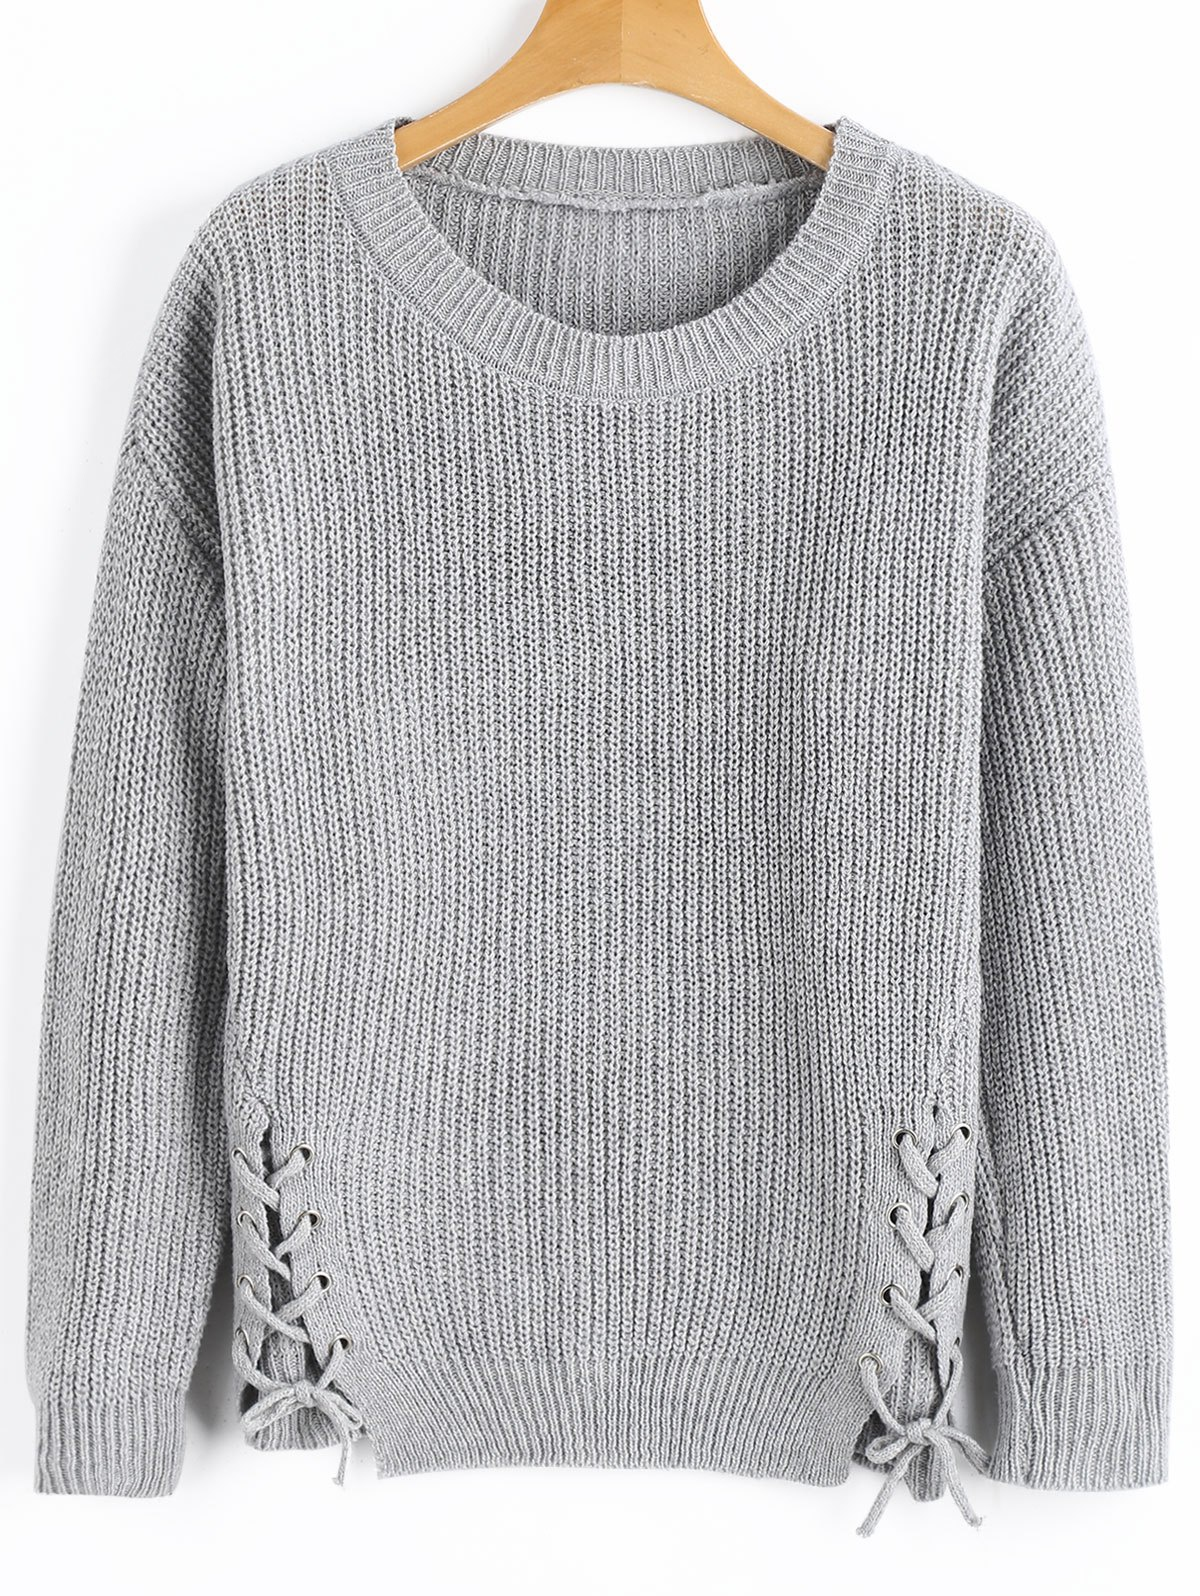 GRAY Ribbed Lace Up Pullover Sweater